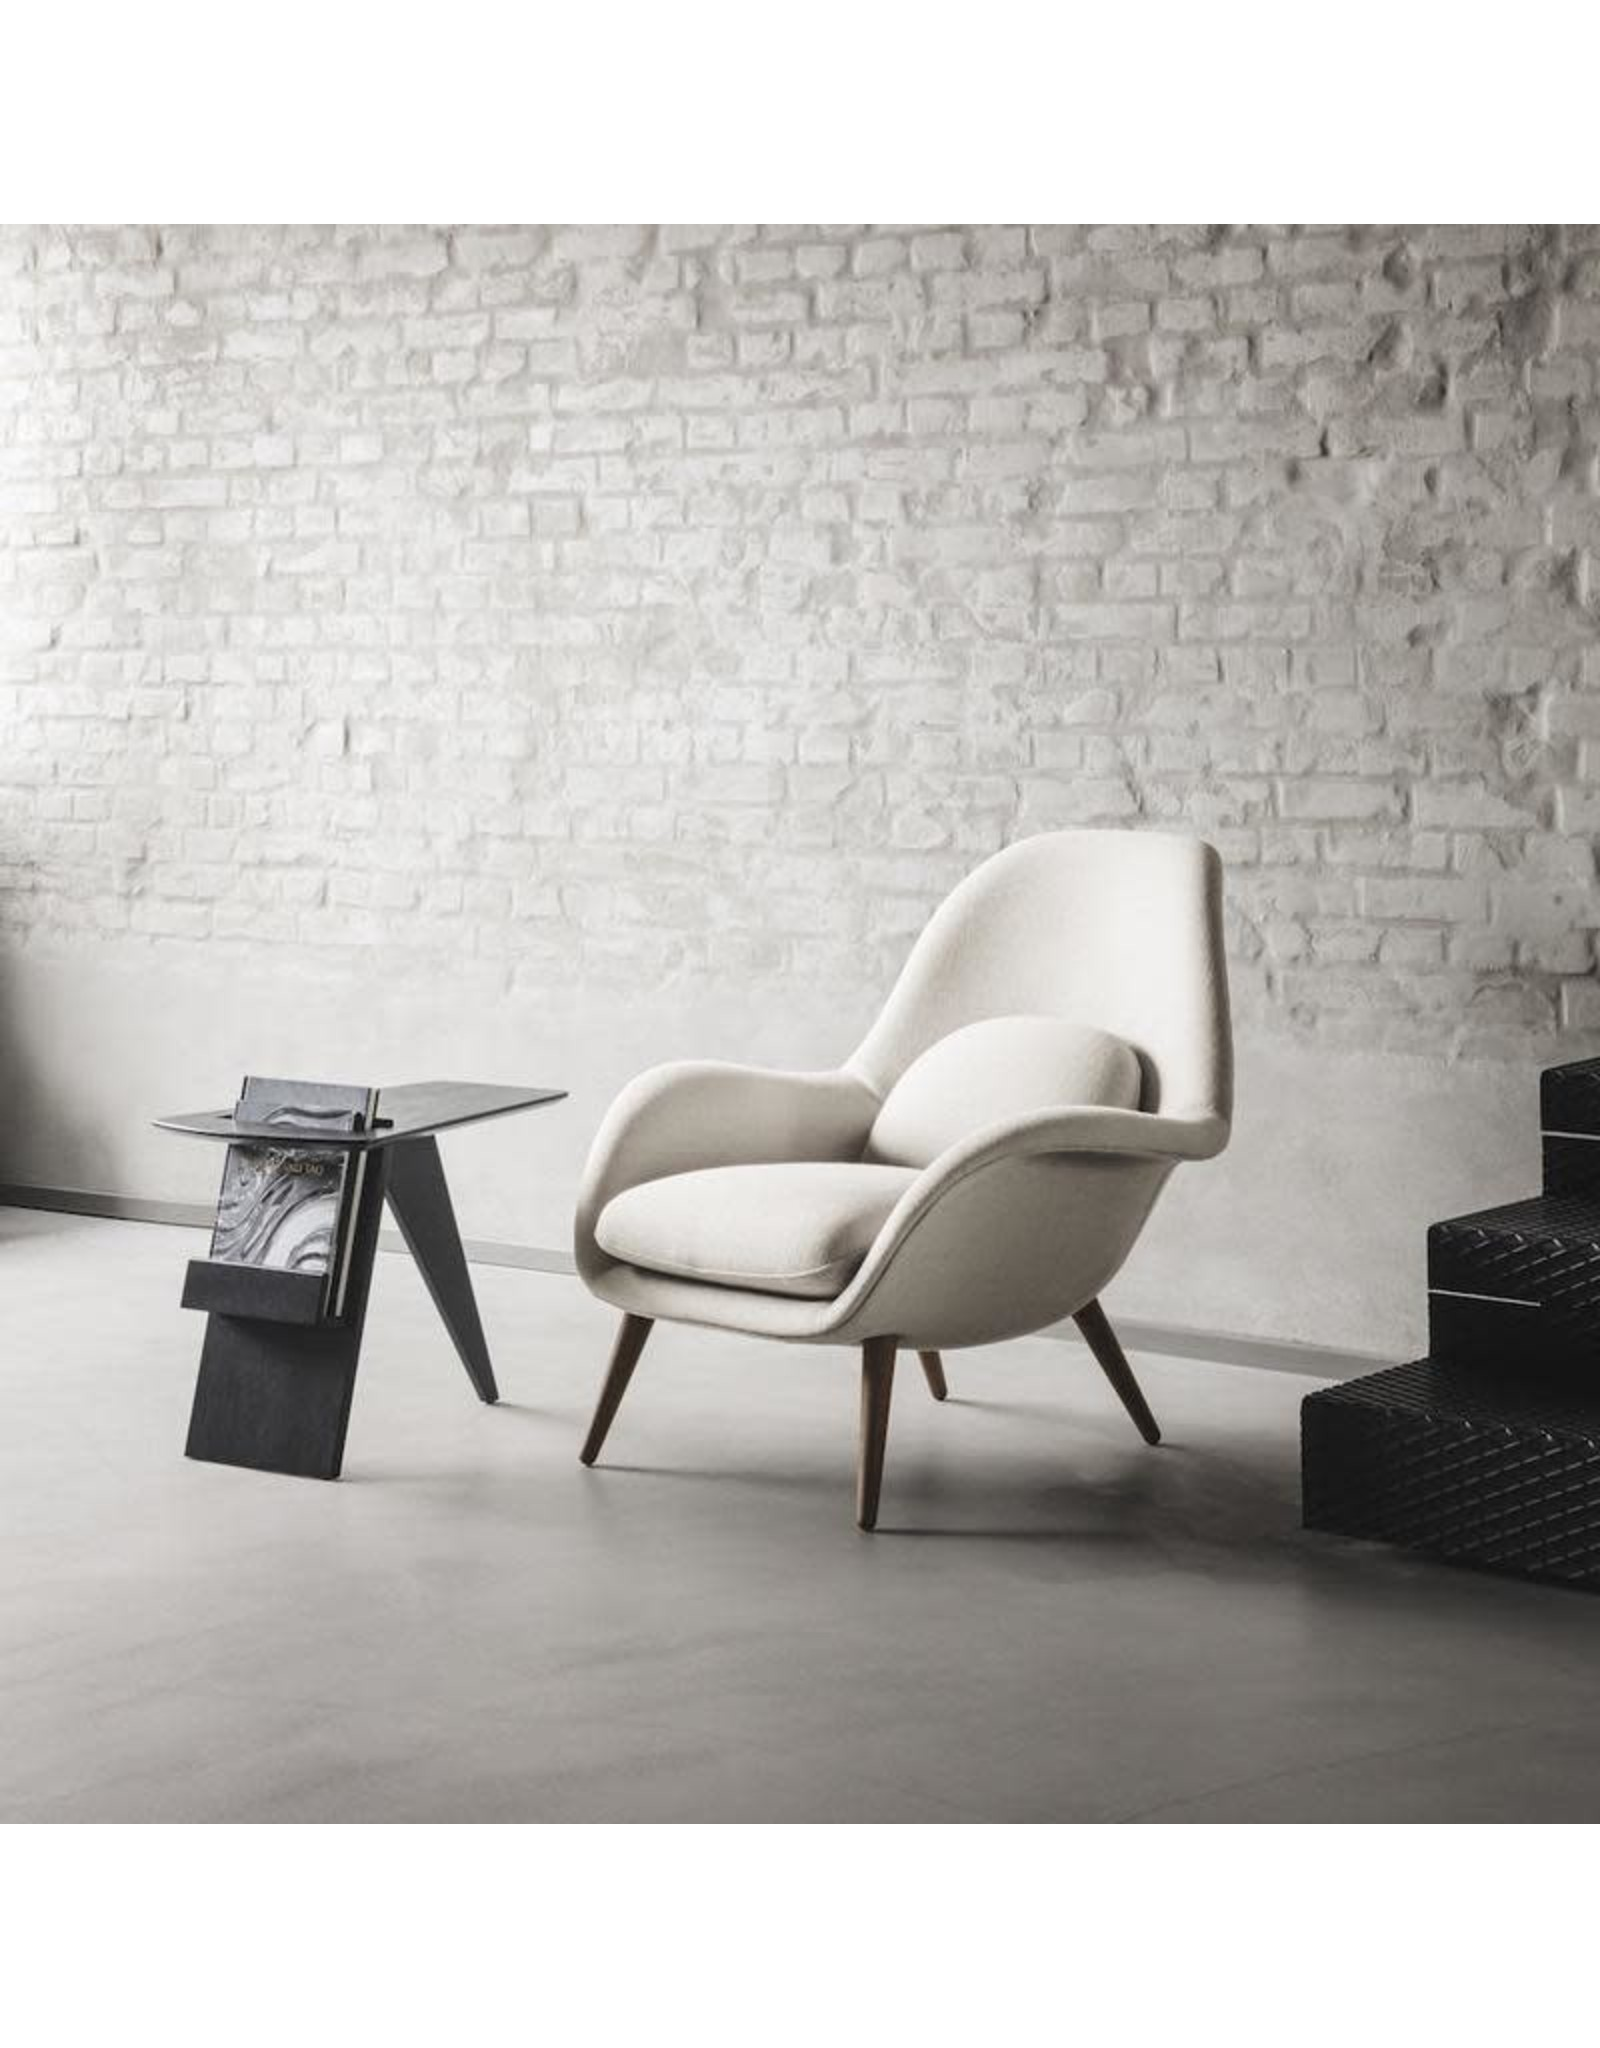 1770 SWOON LOUNGE CHAIR